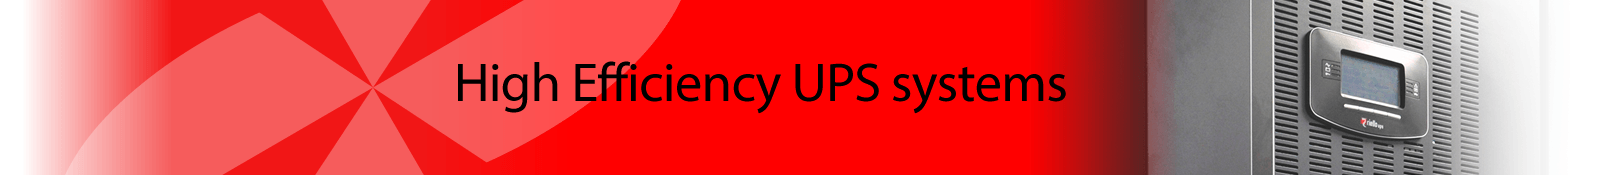 High Efficiency UPS